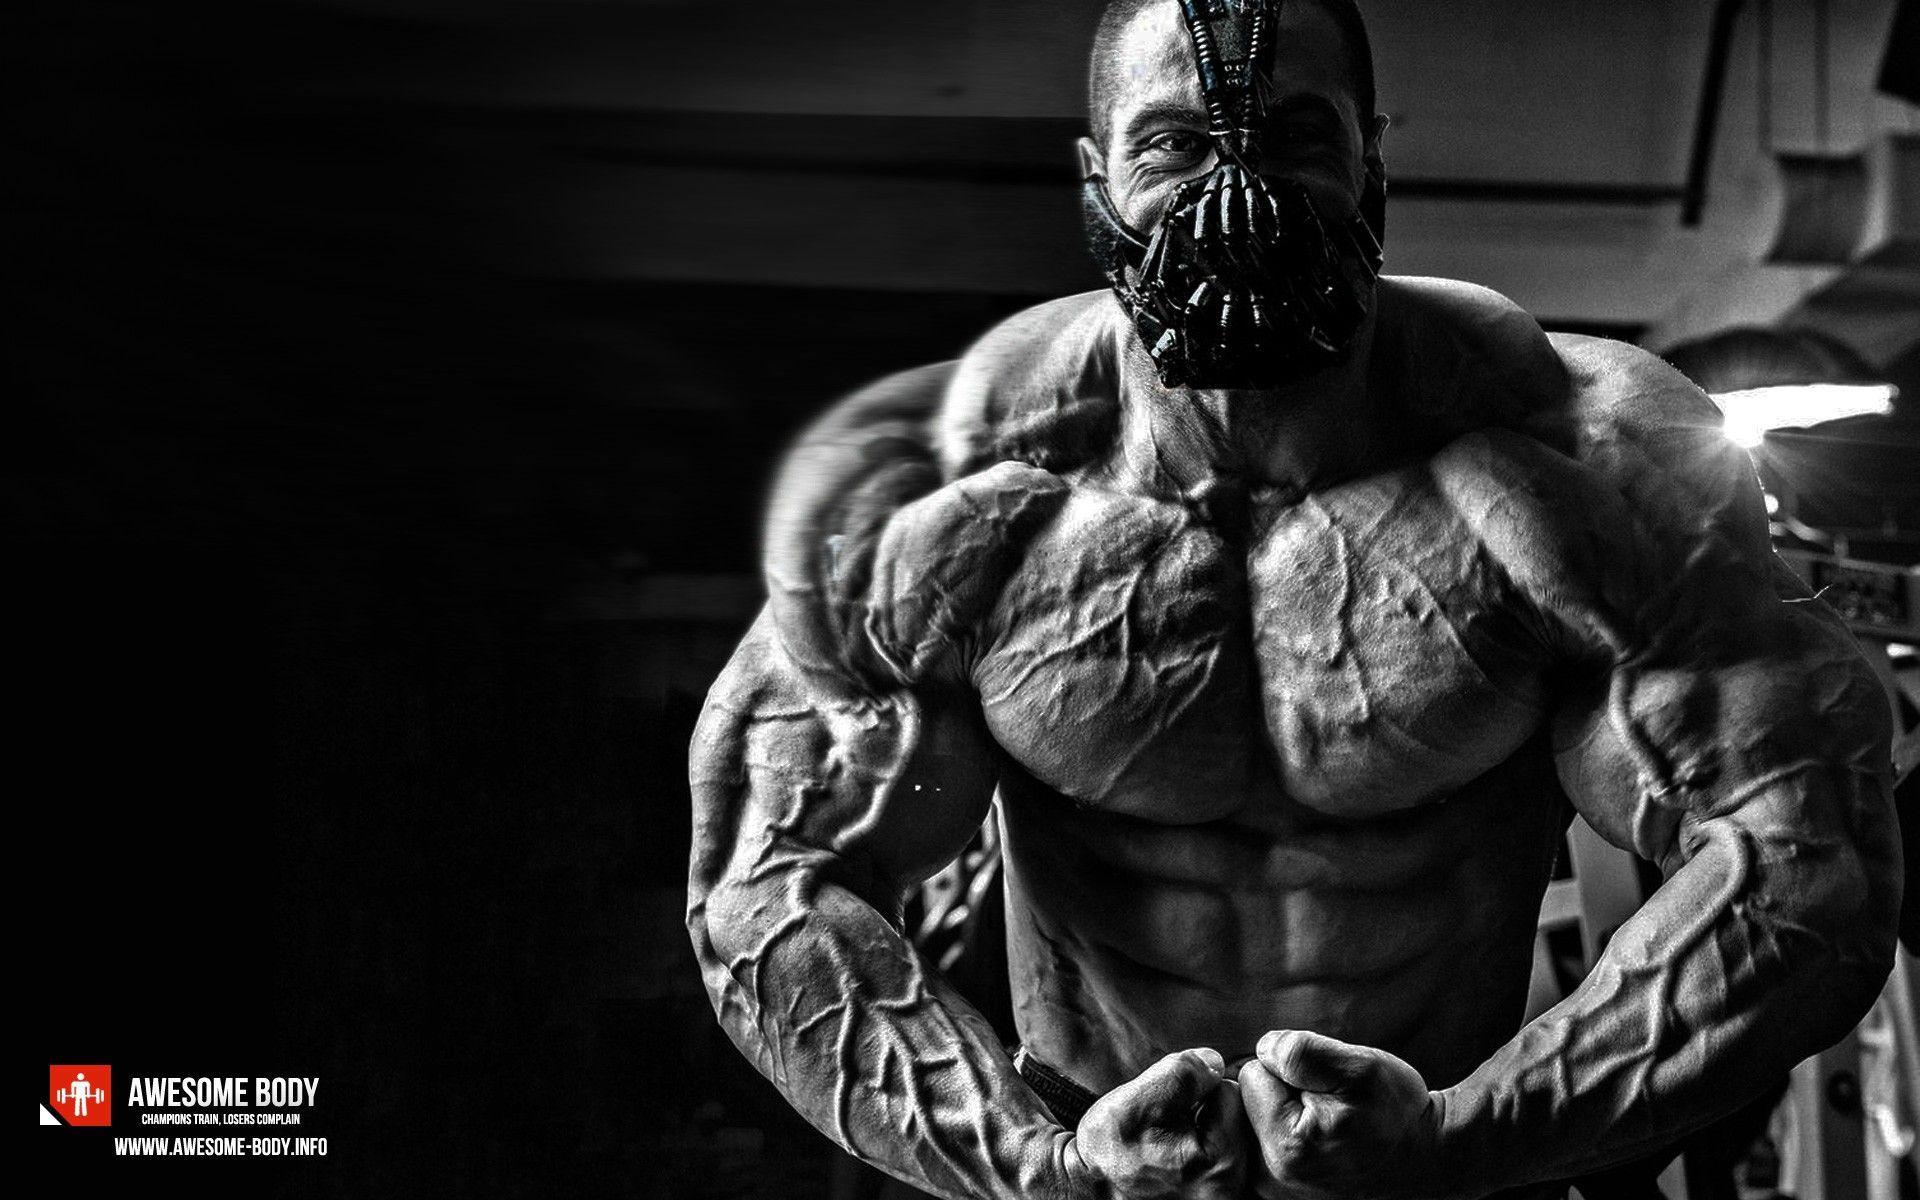 Free Download Bodybuilding Iphone Wallpaper Wwwgalleryhipcom The 1920x1200 For Your Desktop Mobile Tablet Explore 77 Bodybuilder Wallpaper Free Desktop Wallpaper Bodybuilding Inspirations Bodybuilding Wallpapers Hd Bodybuilding Motivation